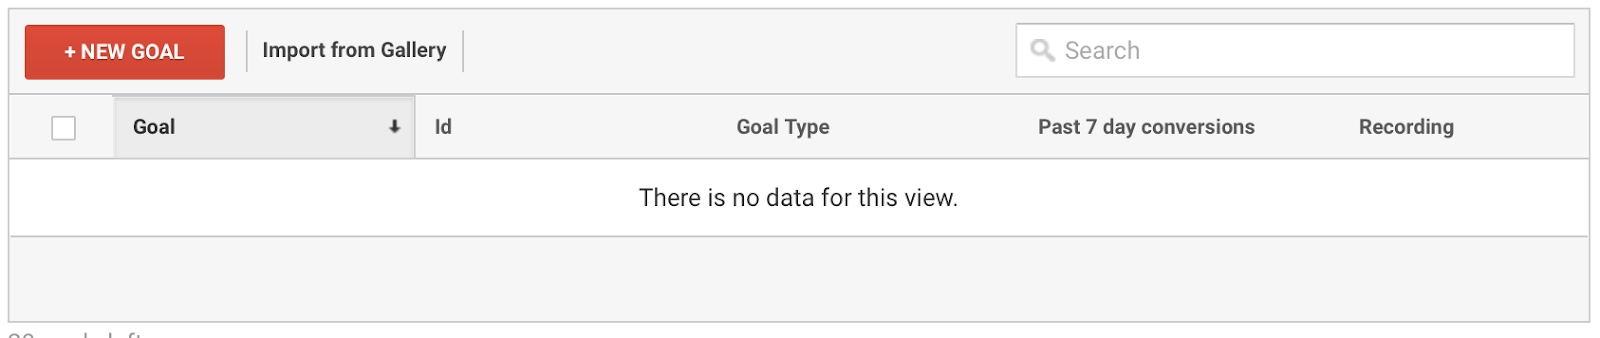 Guild for set up a lead capture goal in google analytics -new goal